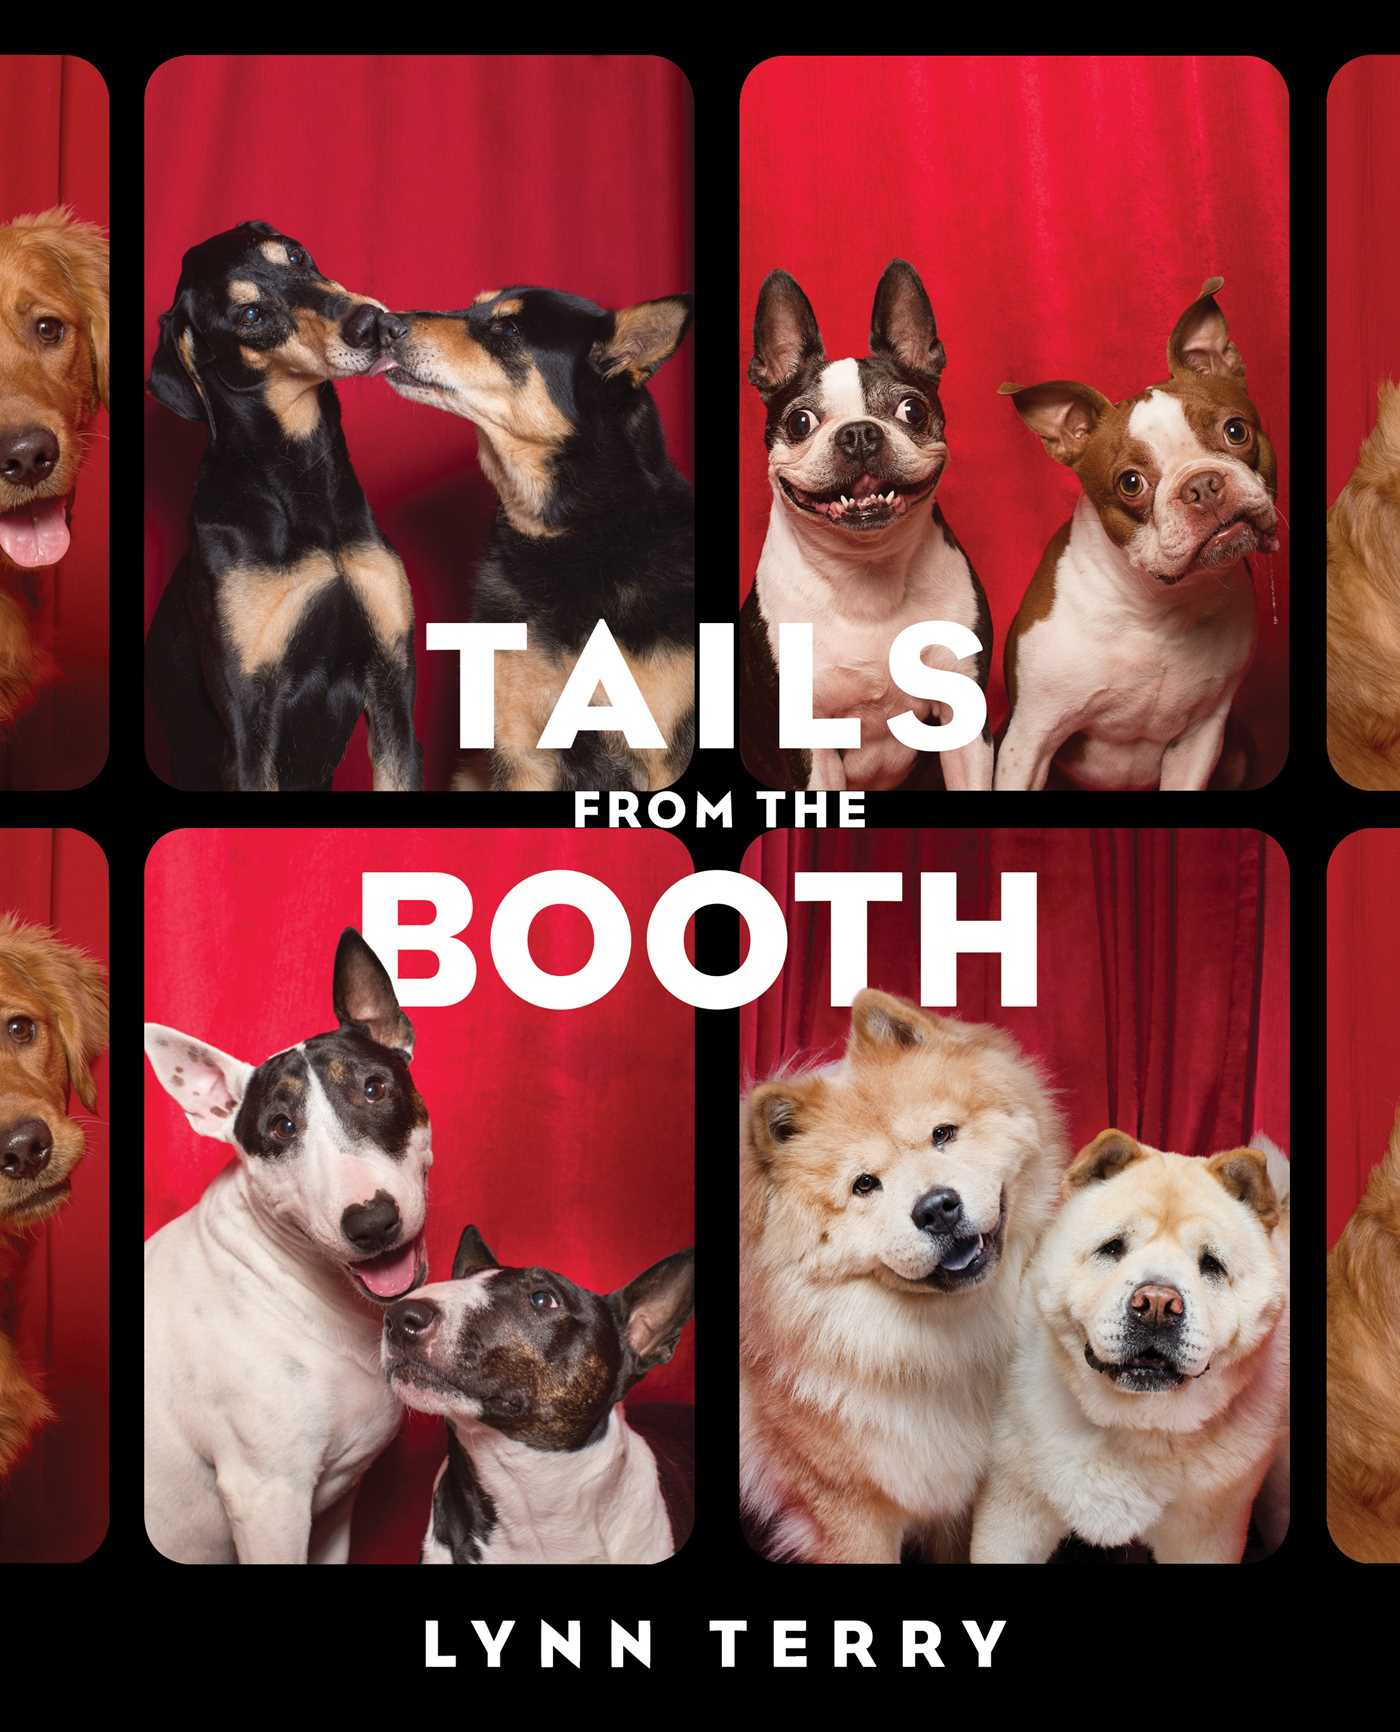 Cushty Tails From Booth Hr Tails From Booth Book By Lynn Terry Official Publisher Page Terry Dogs S Terry Dog Imdb bark post Terry The Dog